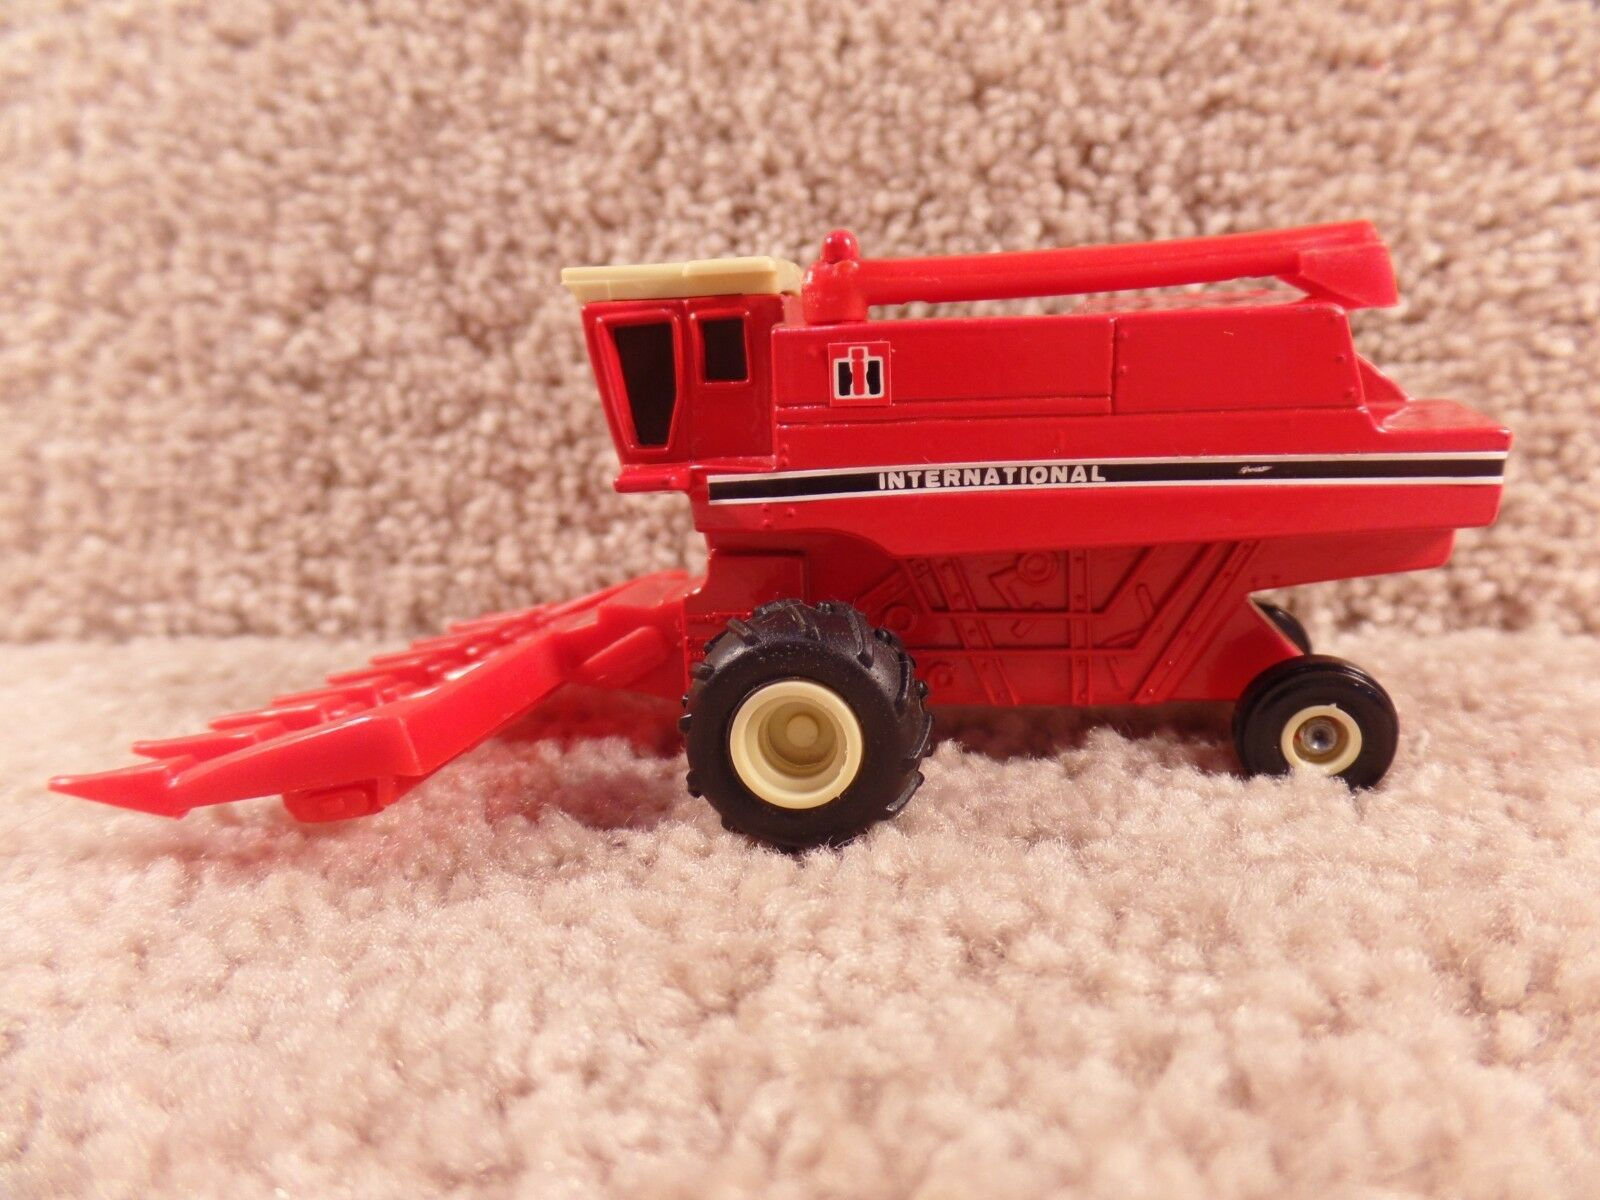 RARE ERTL 1 64 Diecast Case HI International Axial-Flow Combine Both Head B